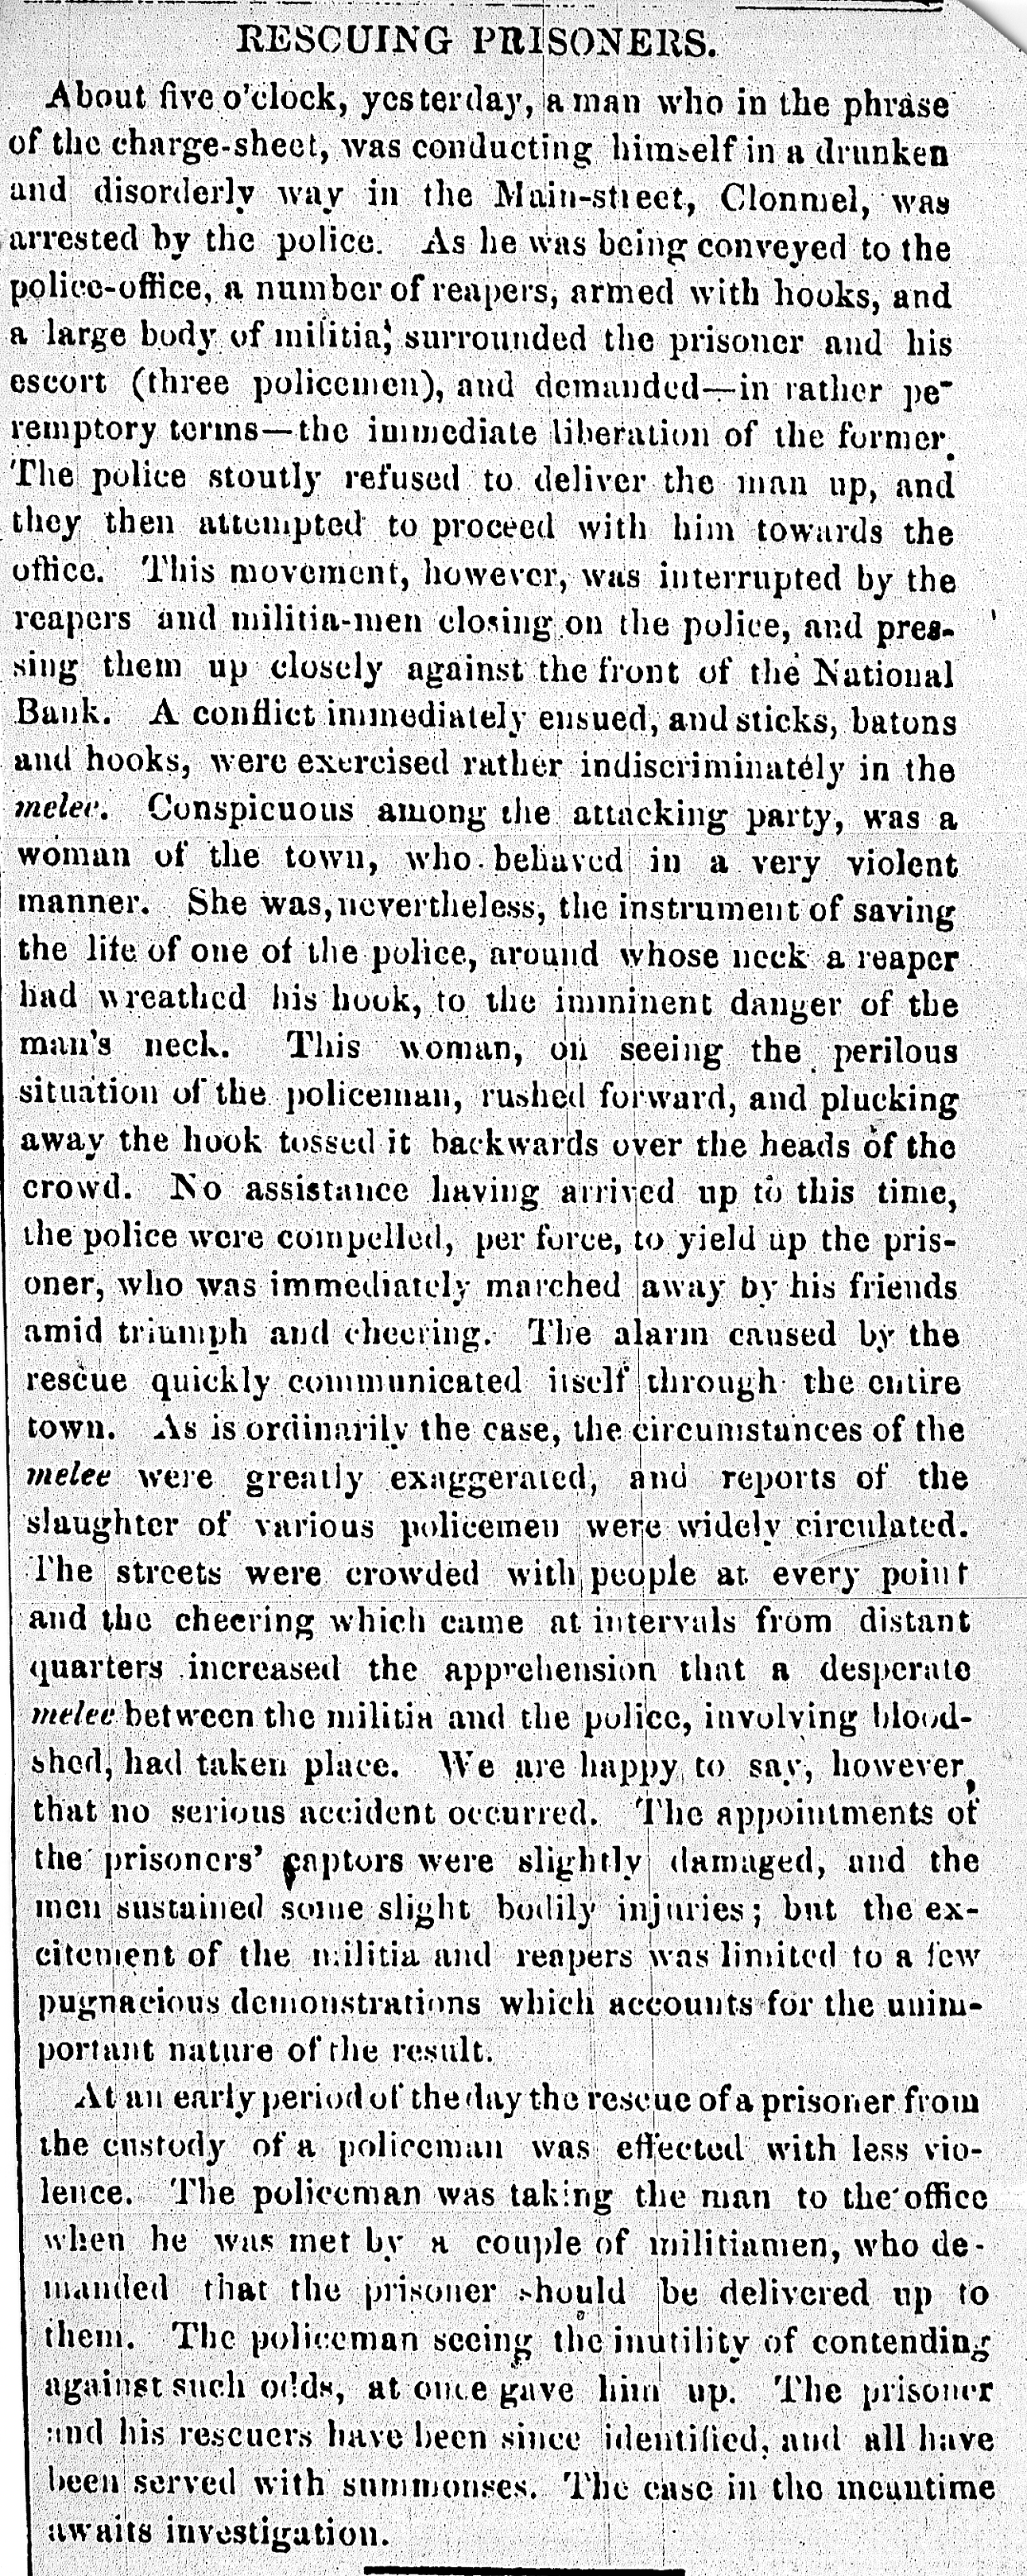 The Limerick, Tipperary & waterford Examiner, 17 Aug 1859